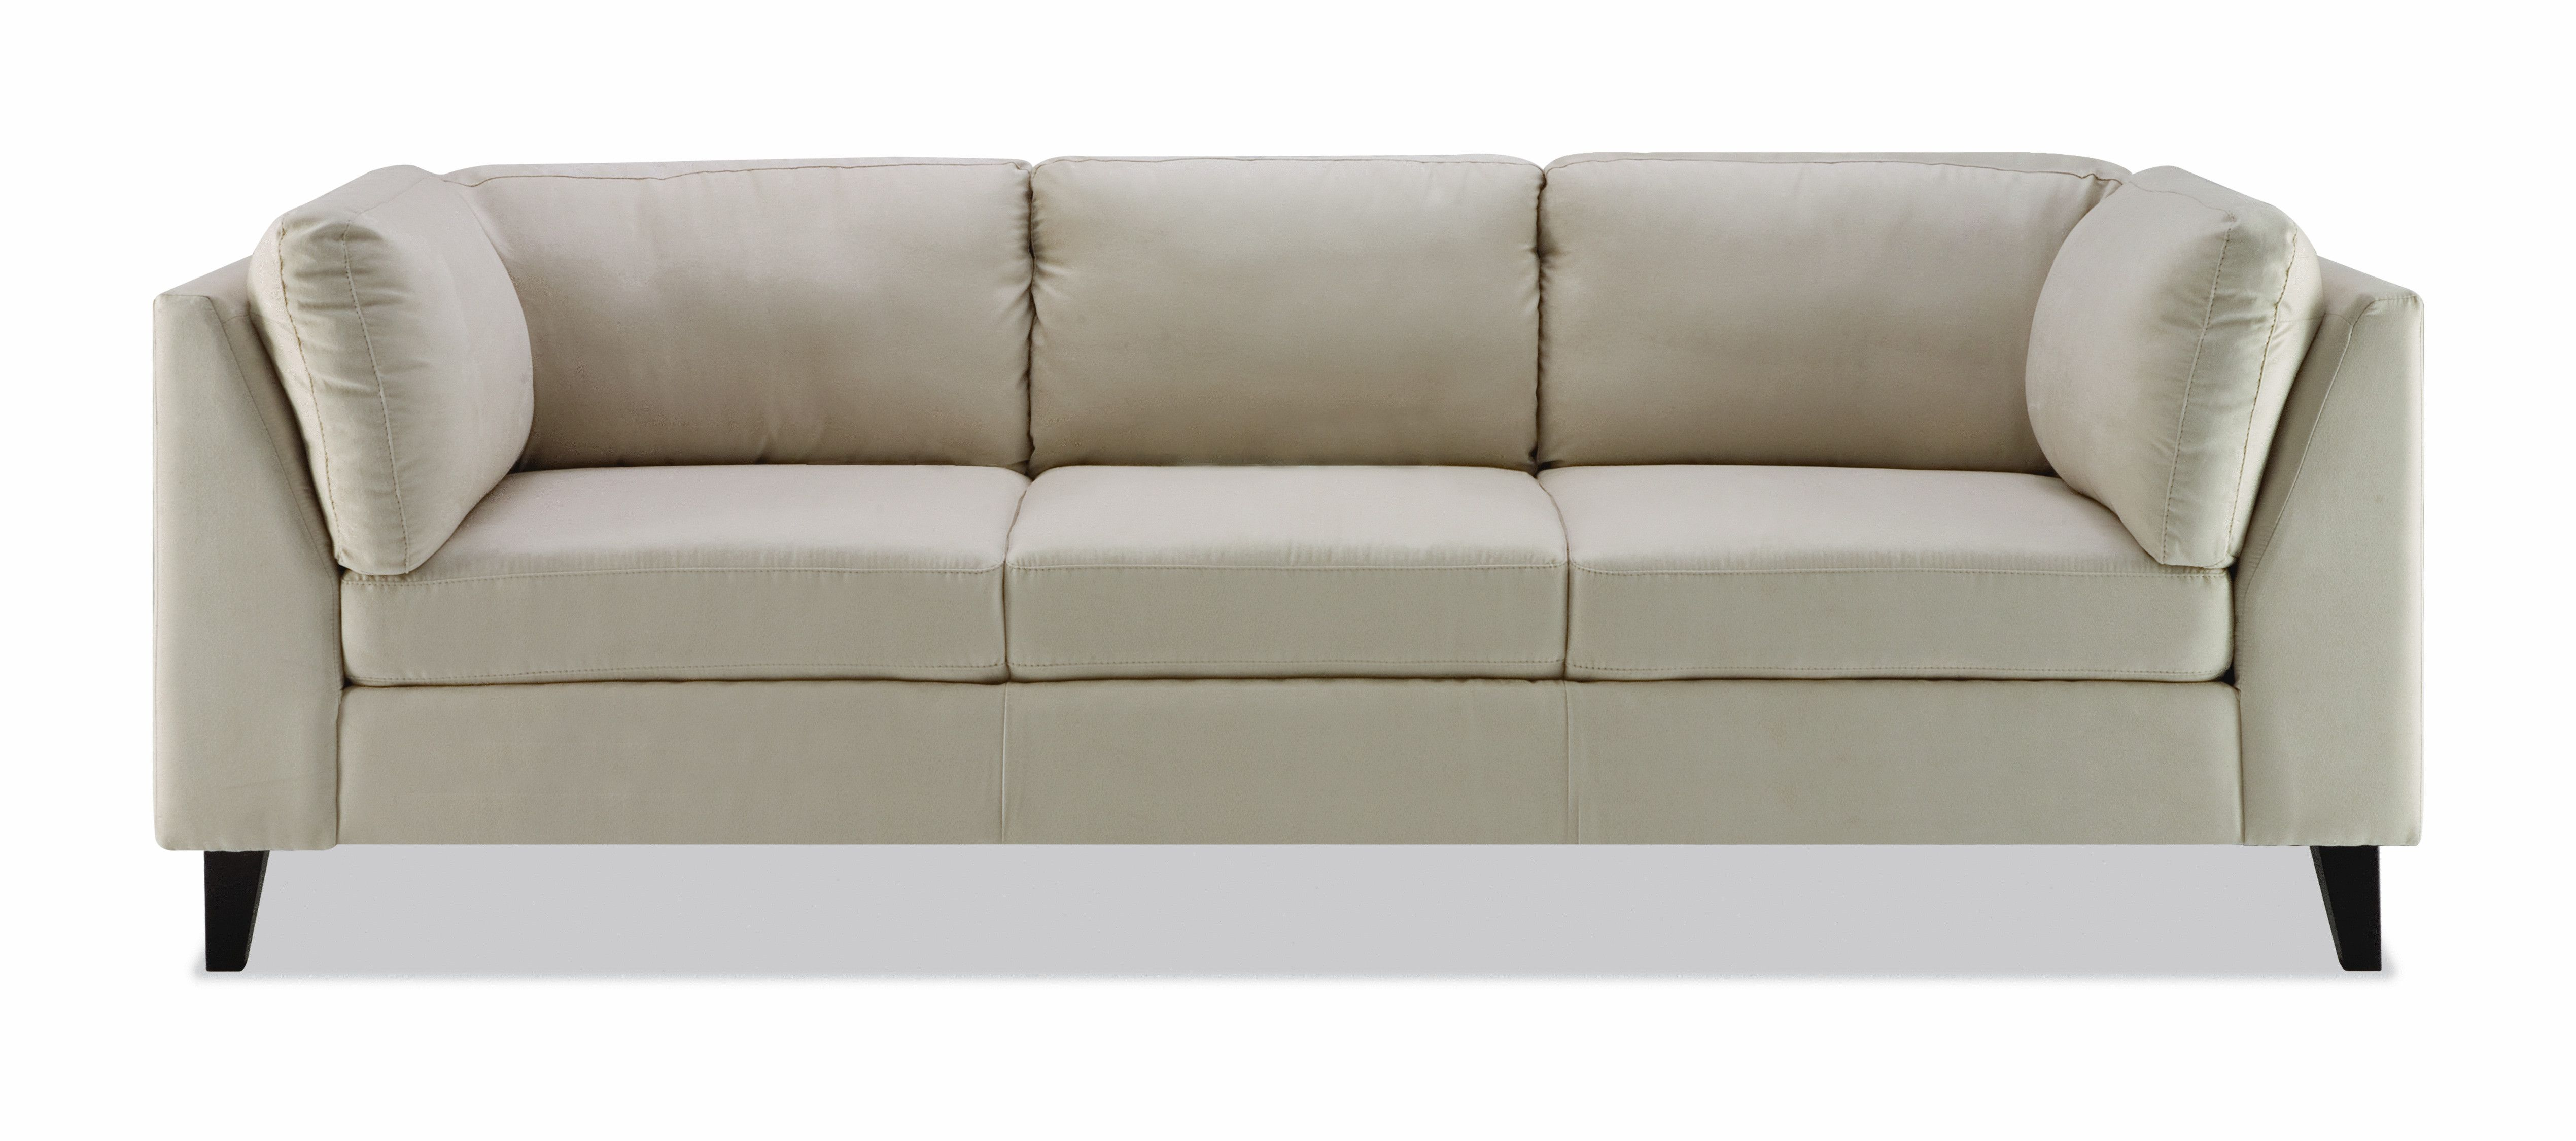 The EQ3 Salema sofa ing fy cozy fortableness